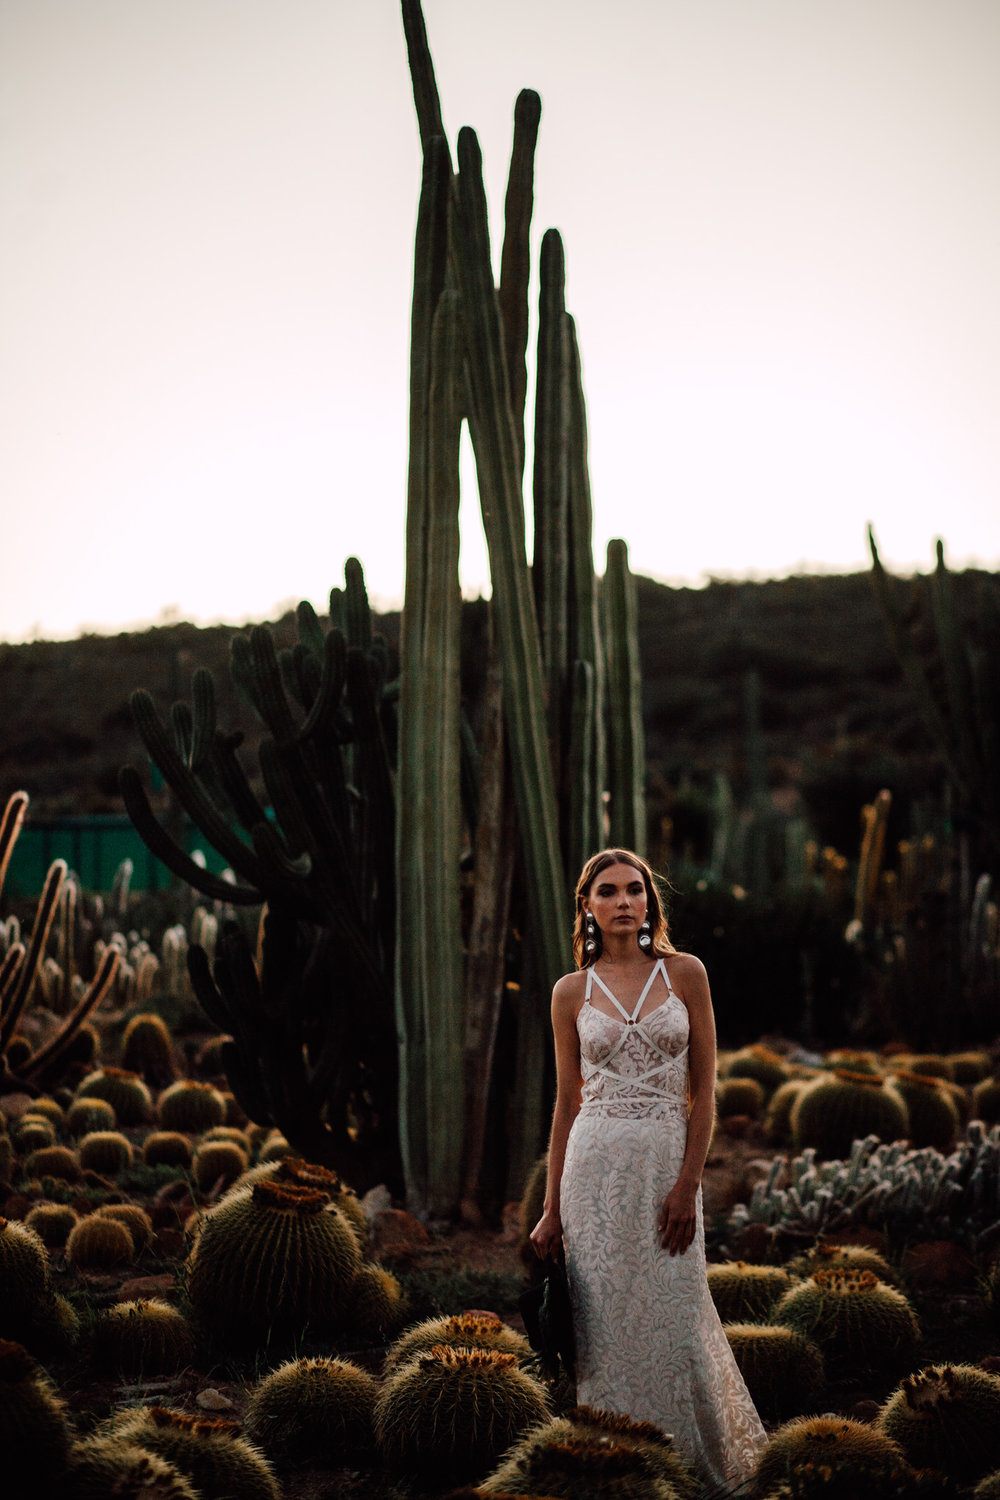 Cape-Town-Pia-Anna-Christian-Wedding-Photography-South-Africa-Bride-Cactus-41.jpg